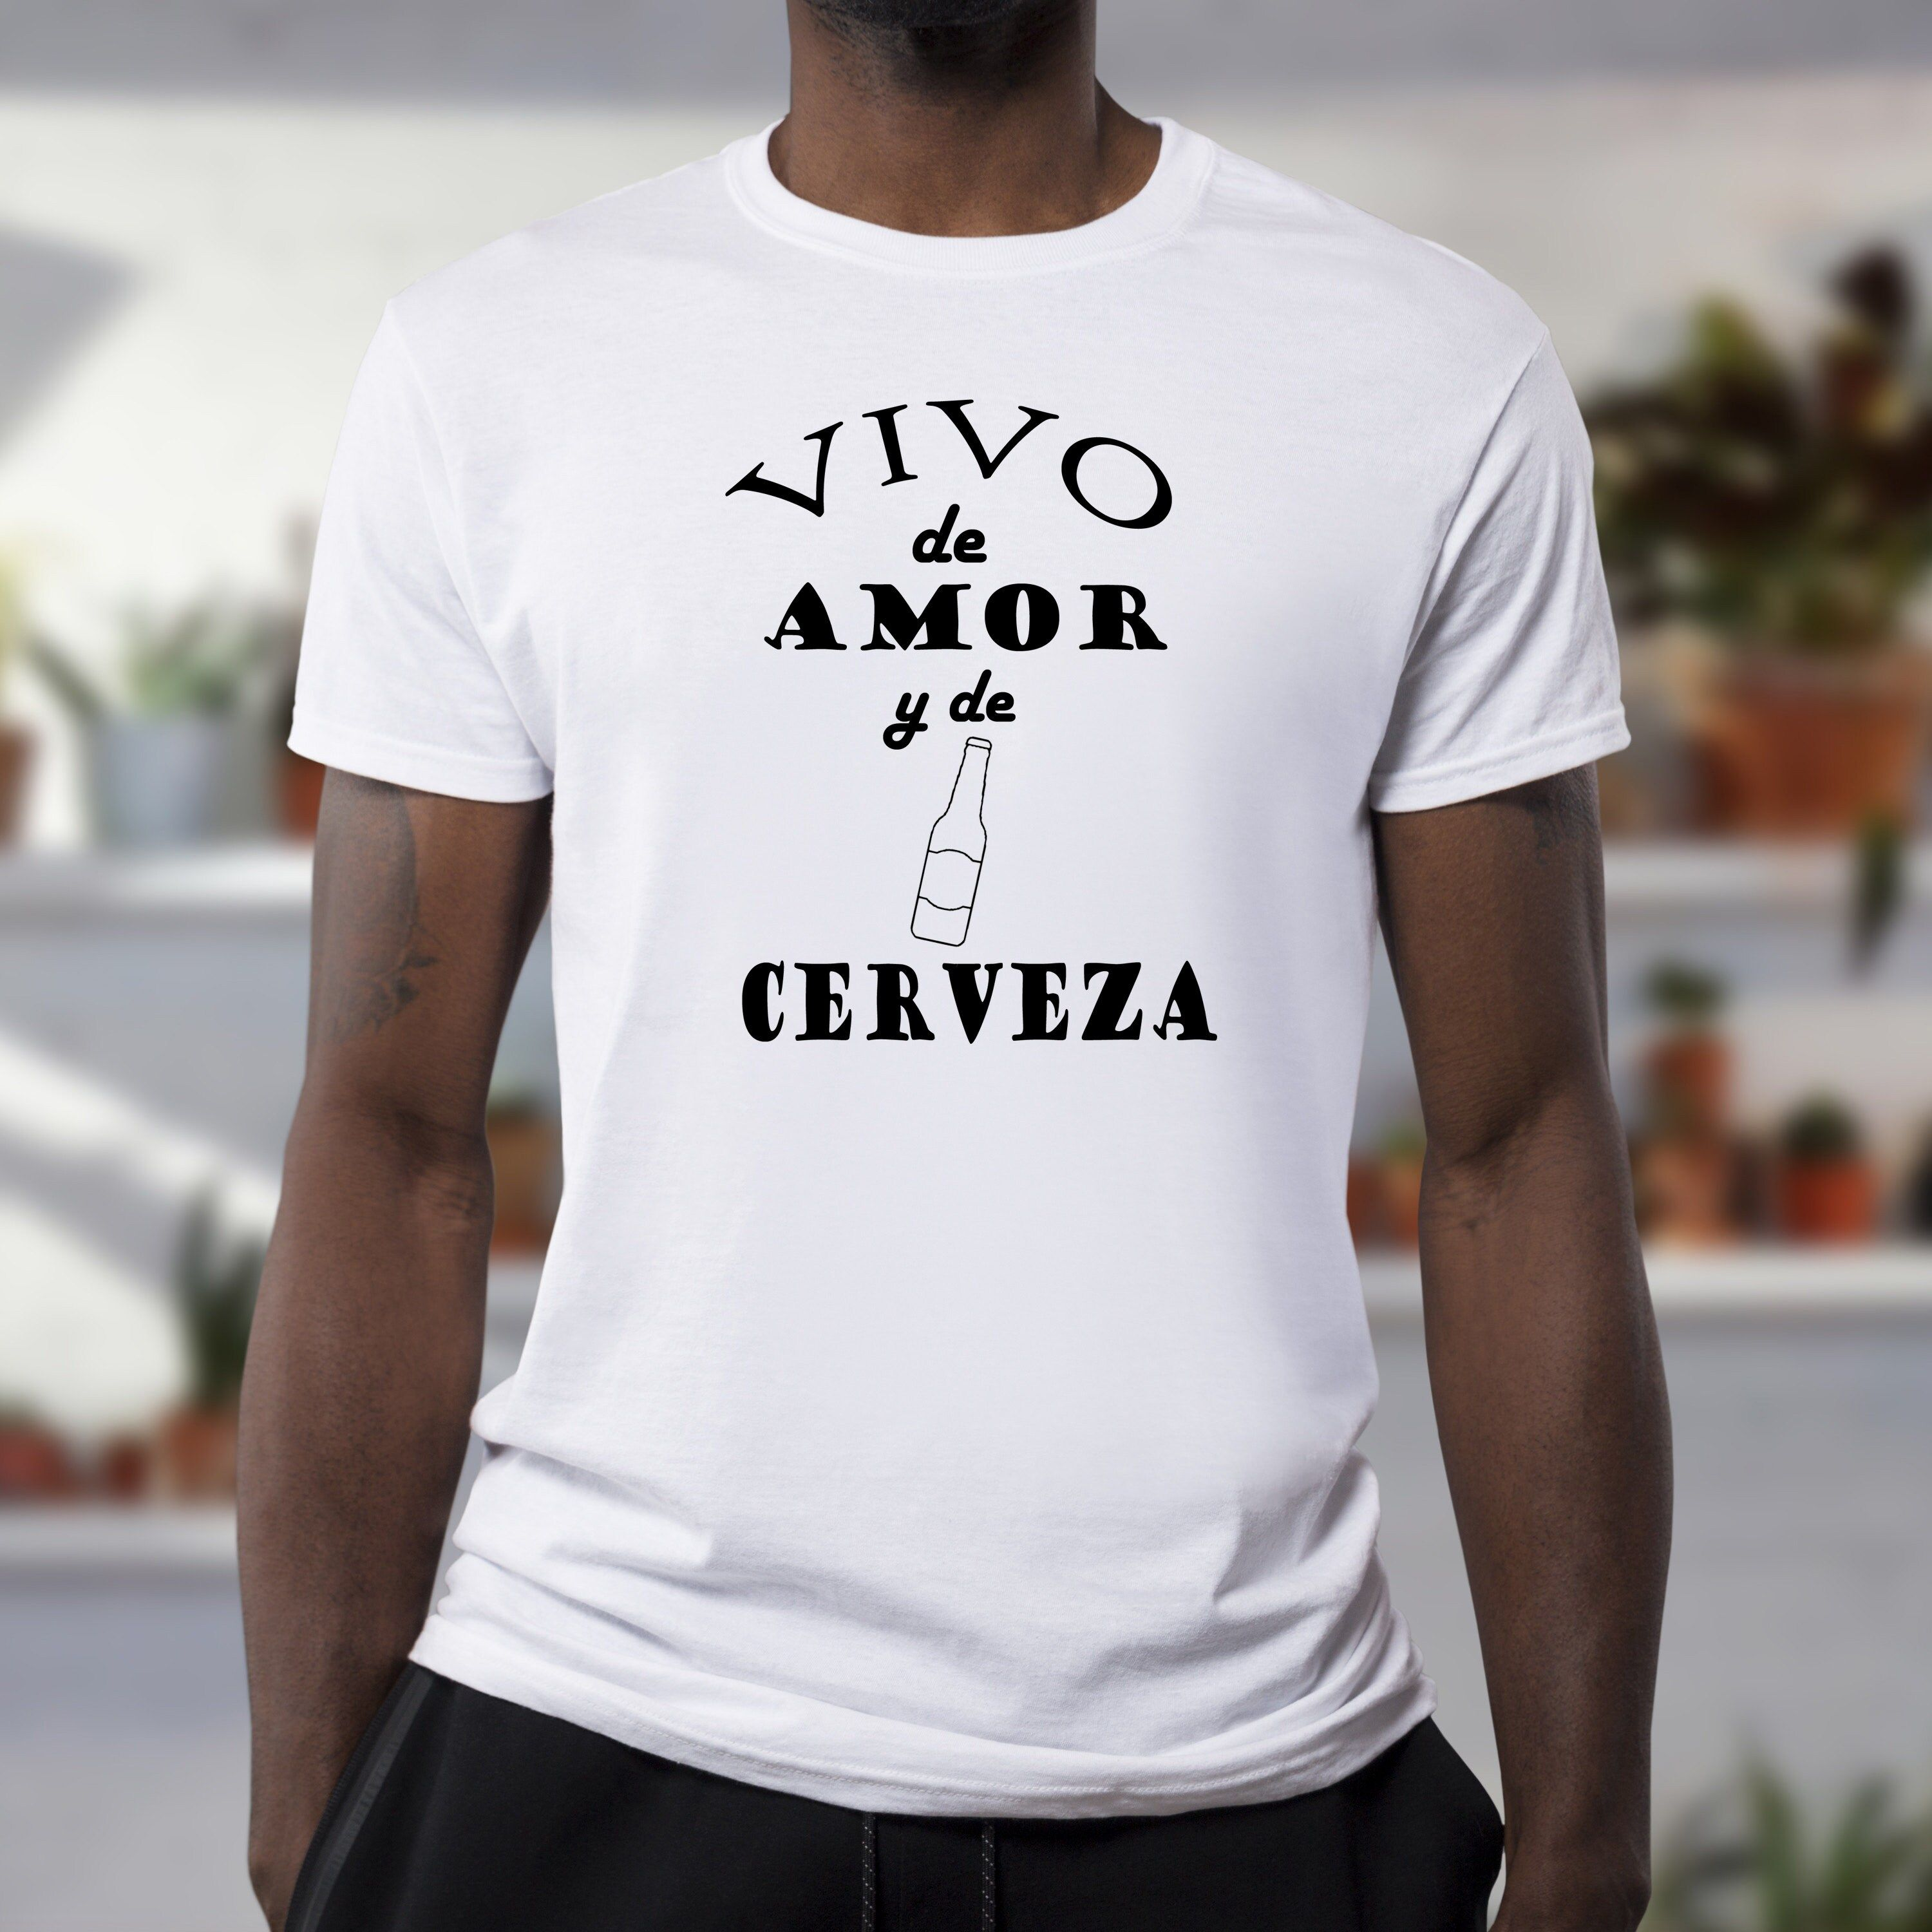 """""""Vivo De Amor y De Cerveza T-Shirt, Dad T-shirt, Daddy T-shirt, Father Day T-shirt, Gift T-shirt. Birthday T-shirt. Text will be sized depending on size of shirt. Shirts are in UNISEX sizing for a relaxed fit. Text on shirts are a SEMI-GLOSS FINISH vinyl. Sizing: Chest x Body length in inches (chest is measured from armpit to armpit) XS 16 1/2\""""x 27\"""" S 18\""""x 28\"""" M 20\""""x 29\"""" L 22\""""x 30\"""" XL 24\""""x 31\"""" Shipping and Policies Please make sure address for shipment is correct as i cannot change it"""